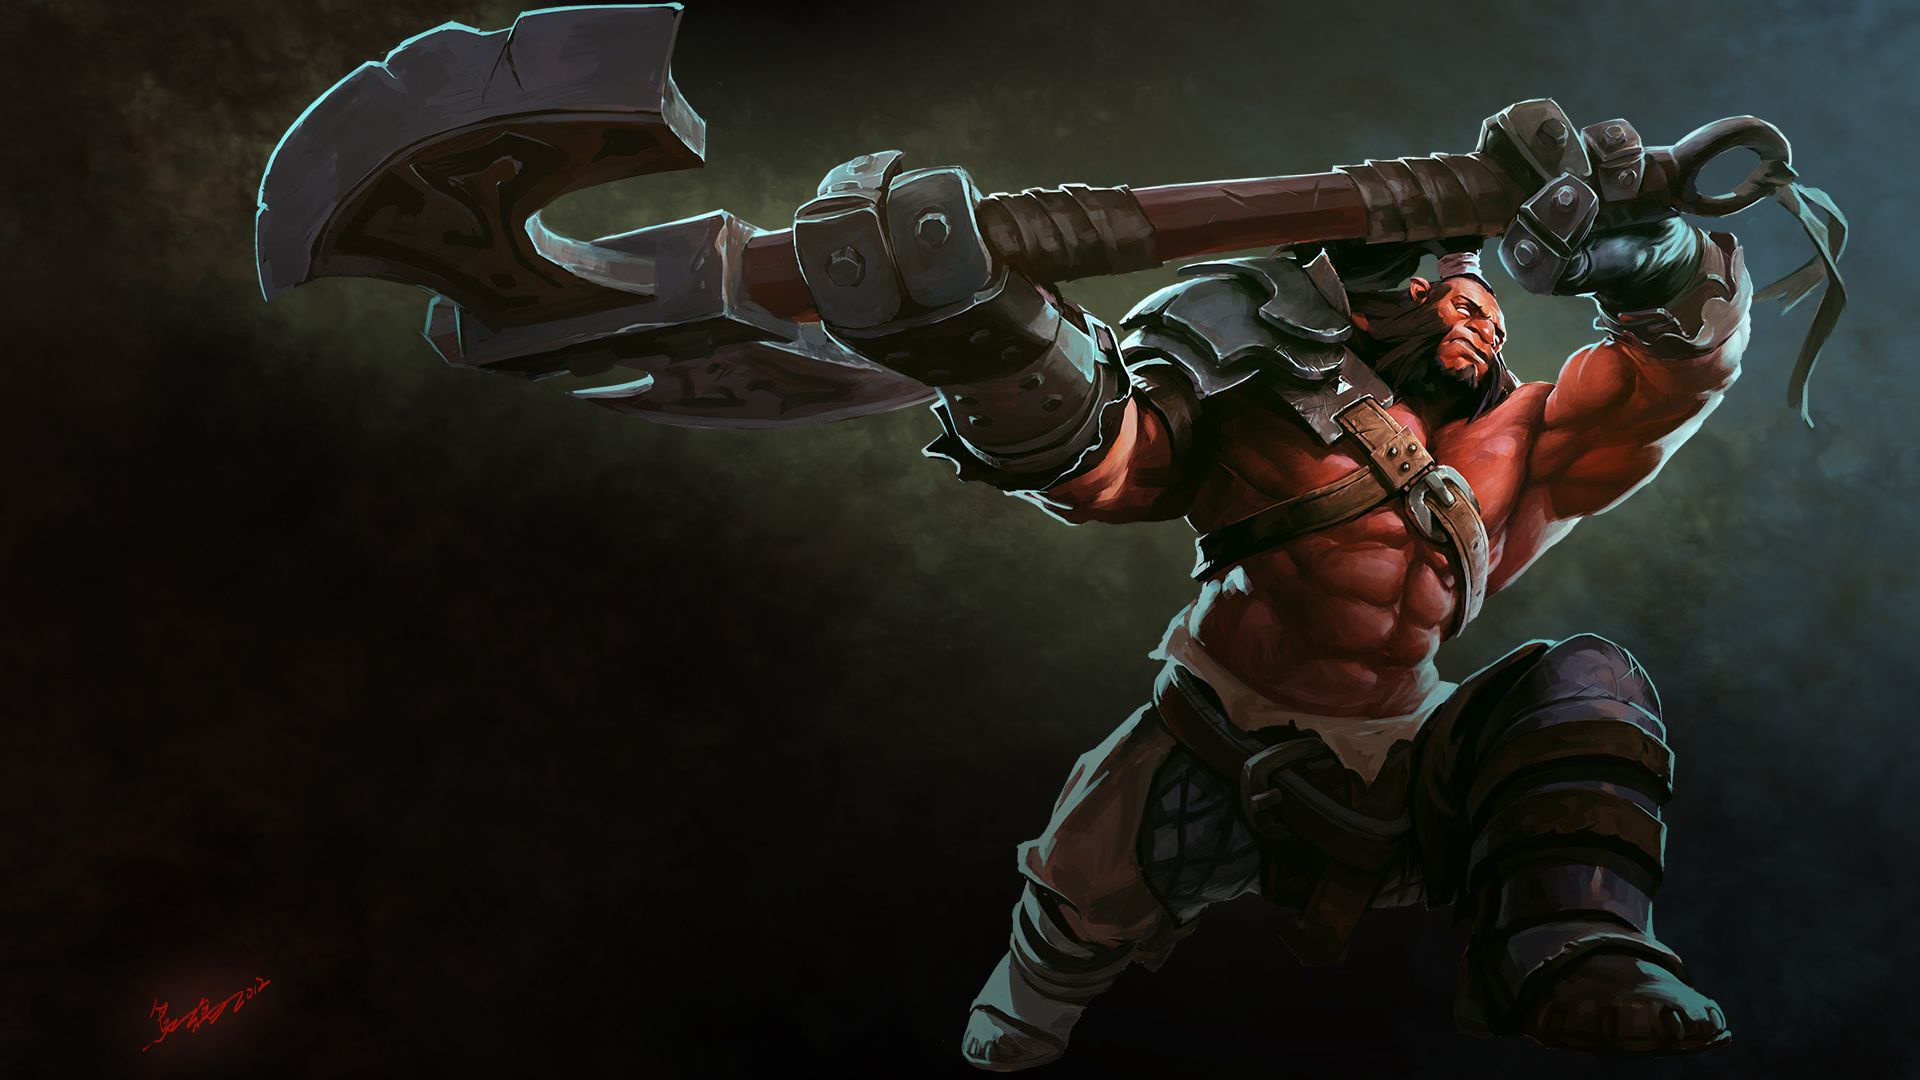 Dota 2 wallpapers best wallpapers all wallpapers pinterest dota 2 wallpapers best wallpapers voltagebd Image collections